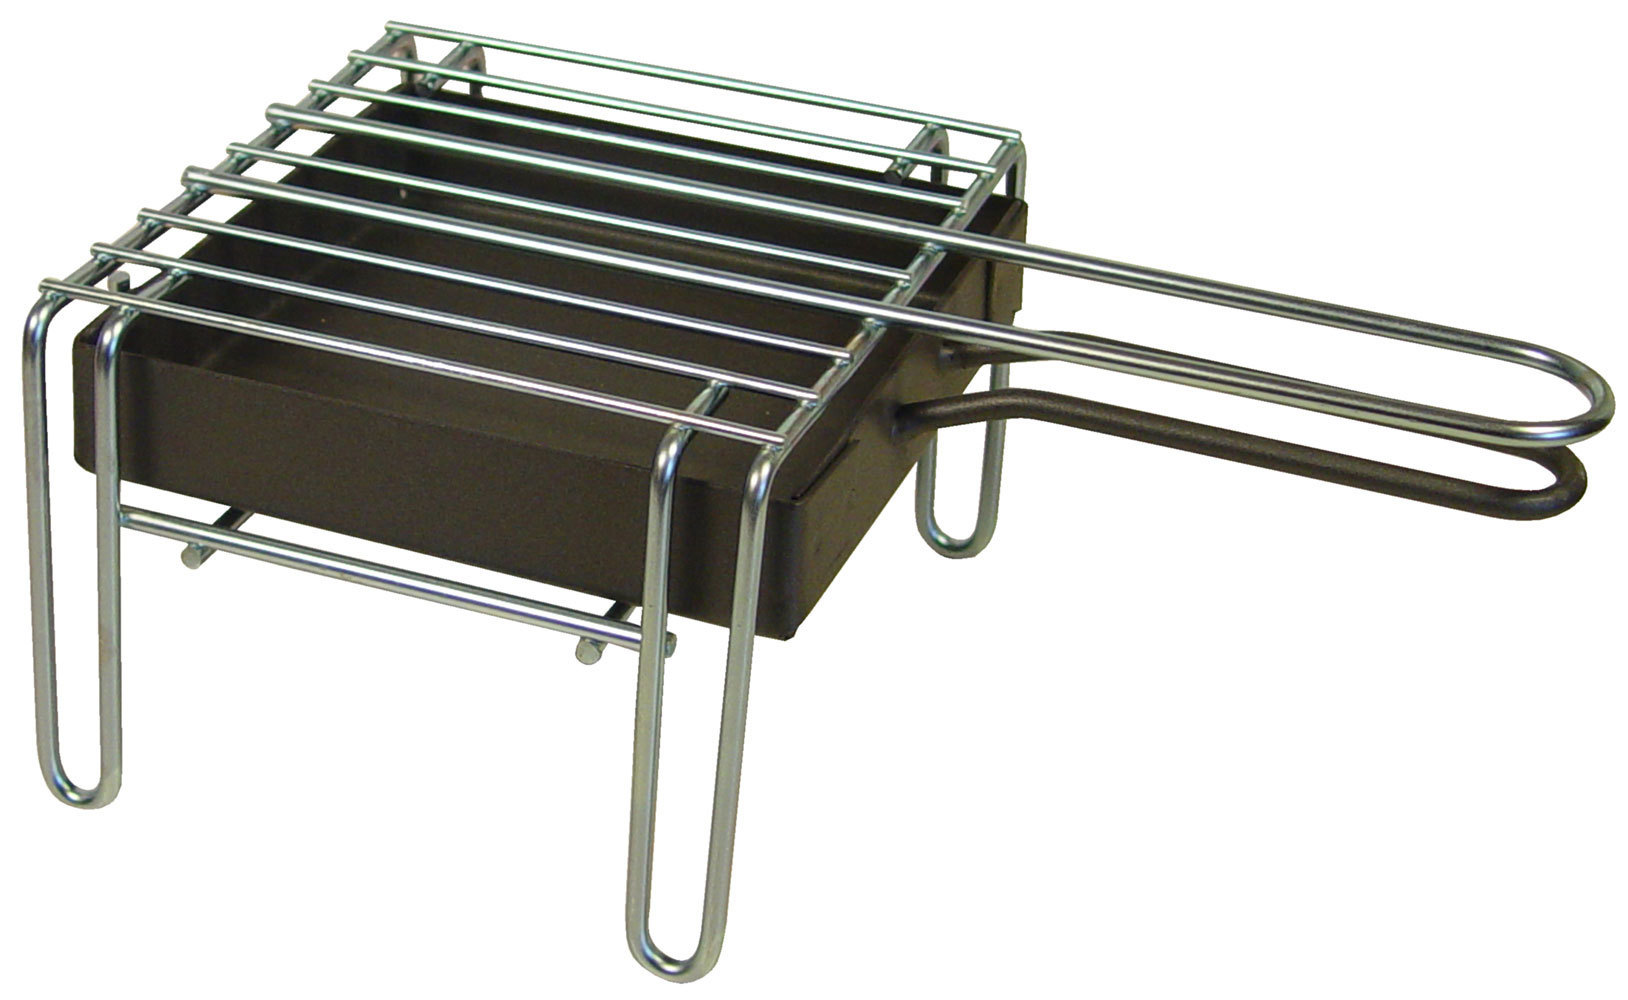 Table Barbecue with Zinc Grill I